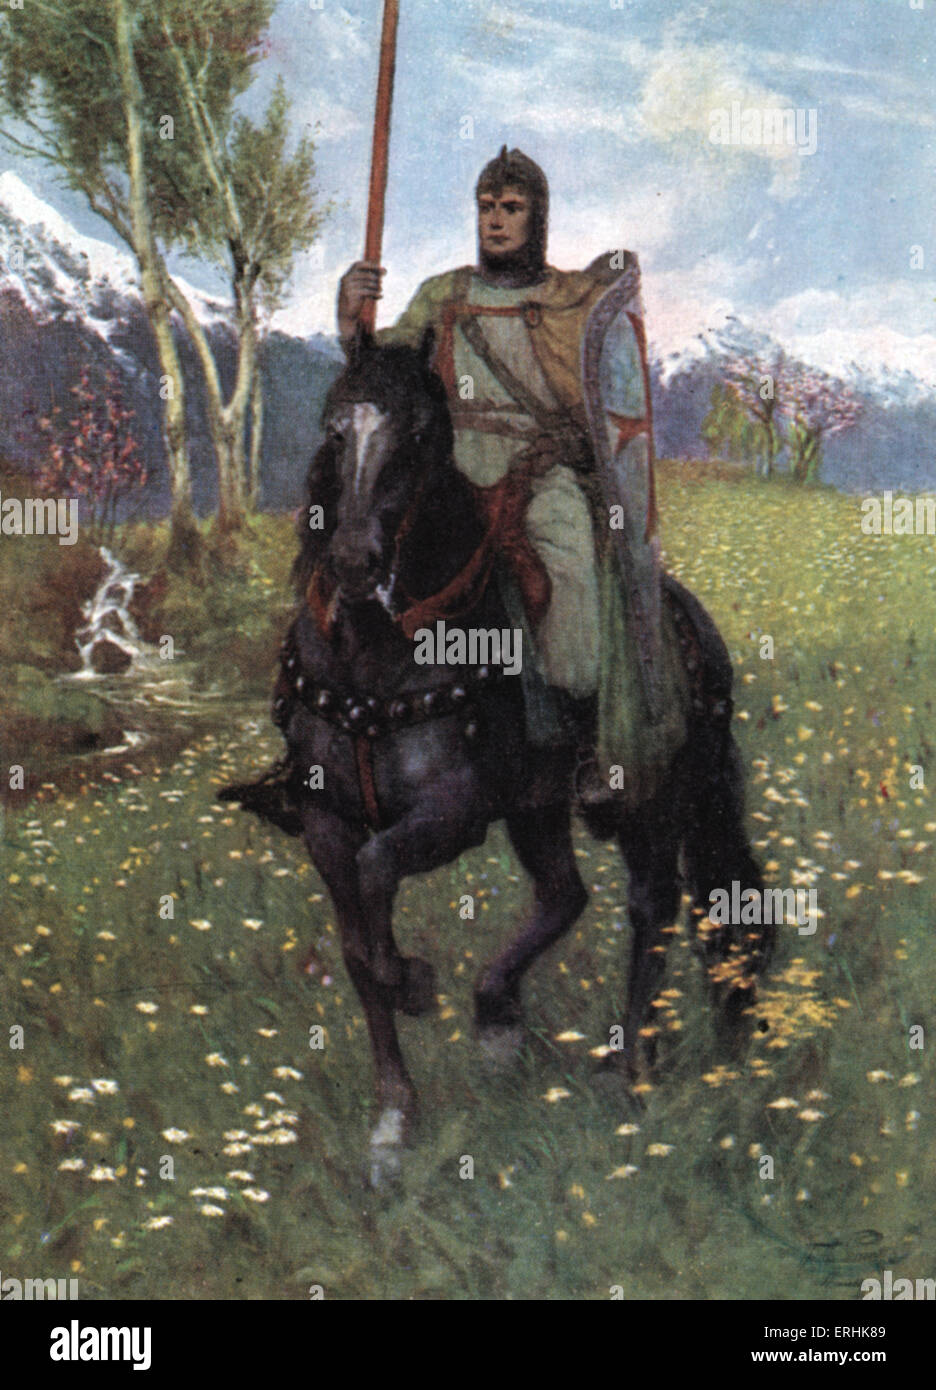 Richard Wagner 's 'Parsifal' - the Knight on horseback in an outdoors setting. - Stock Image